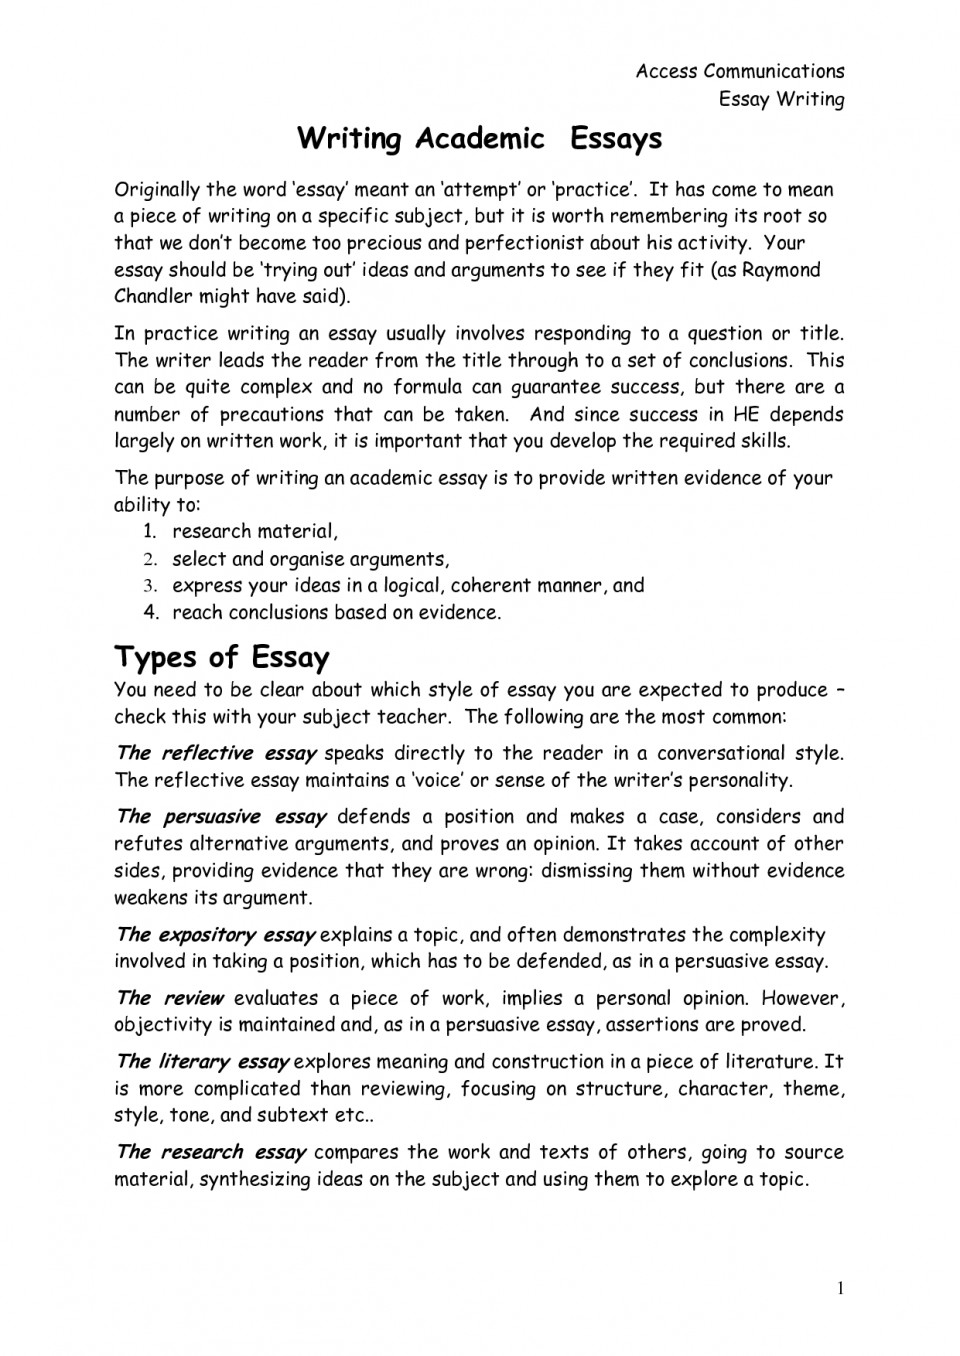 016 Reflective Essay On Academic Writings Beautiful Examples Writing Pdf College Sample 960